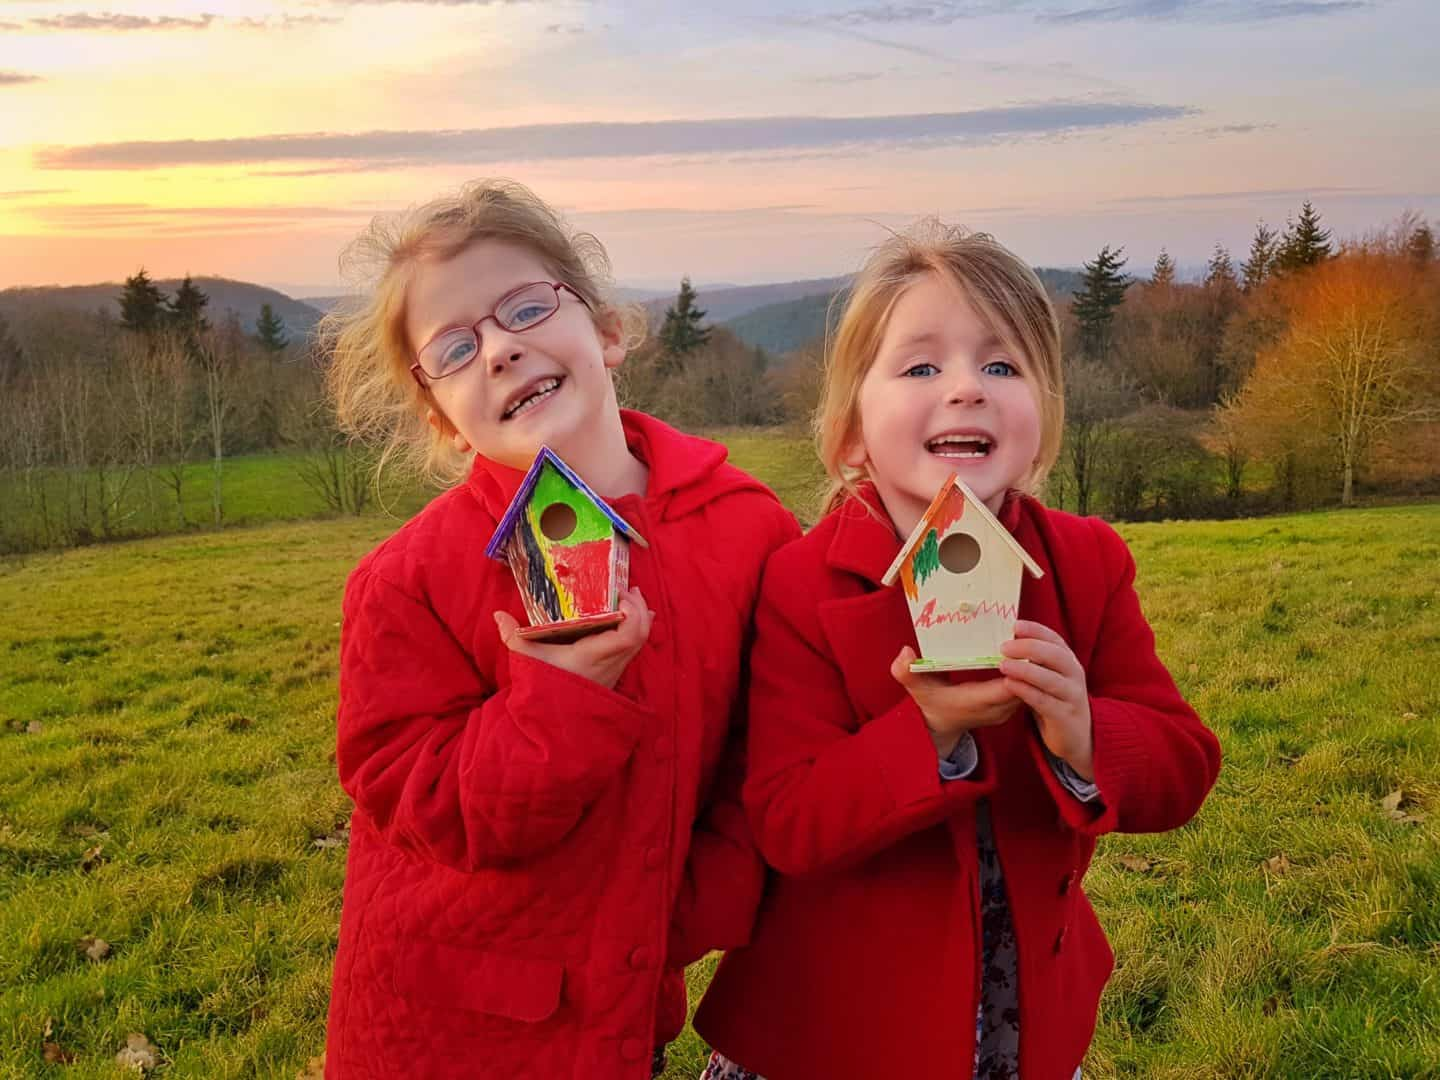 Crowngate Shopping Centre Worcester kids club girls showing bird houses against sunset sky